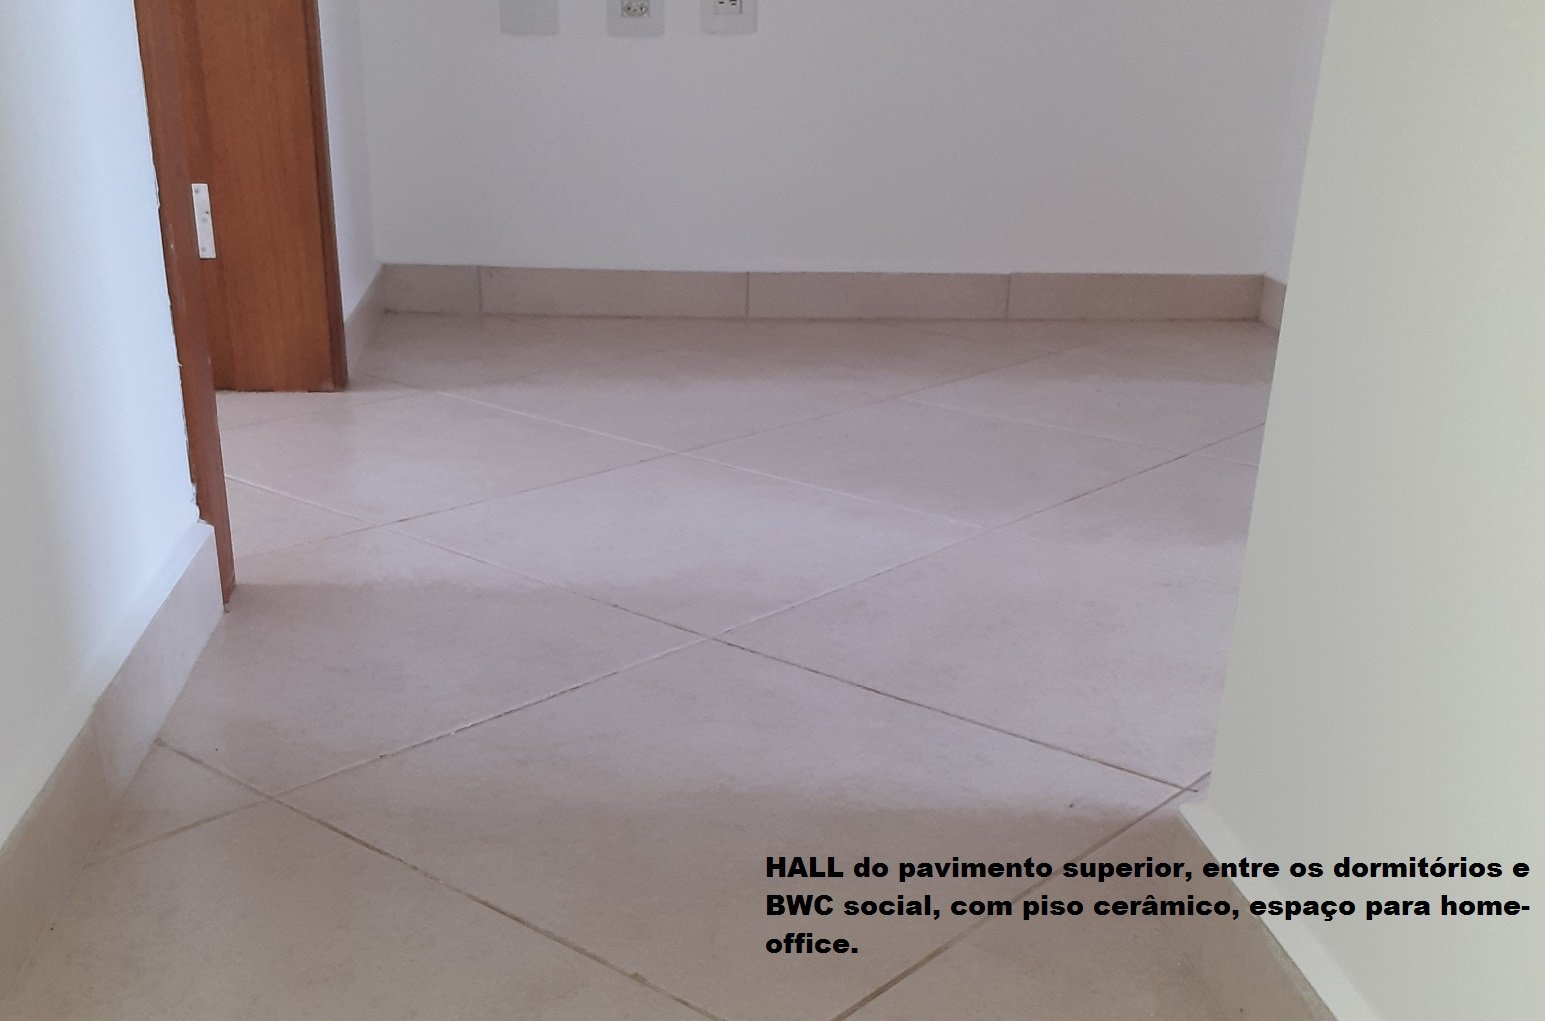 https://0201.nccdn.net/1_2/000/000/0cb/474/015-Hall-piso-superior.jpg